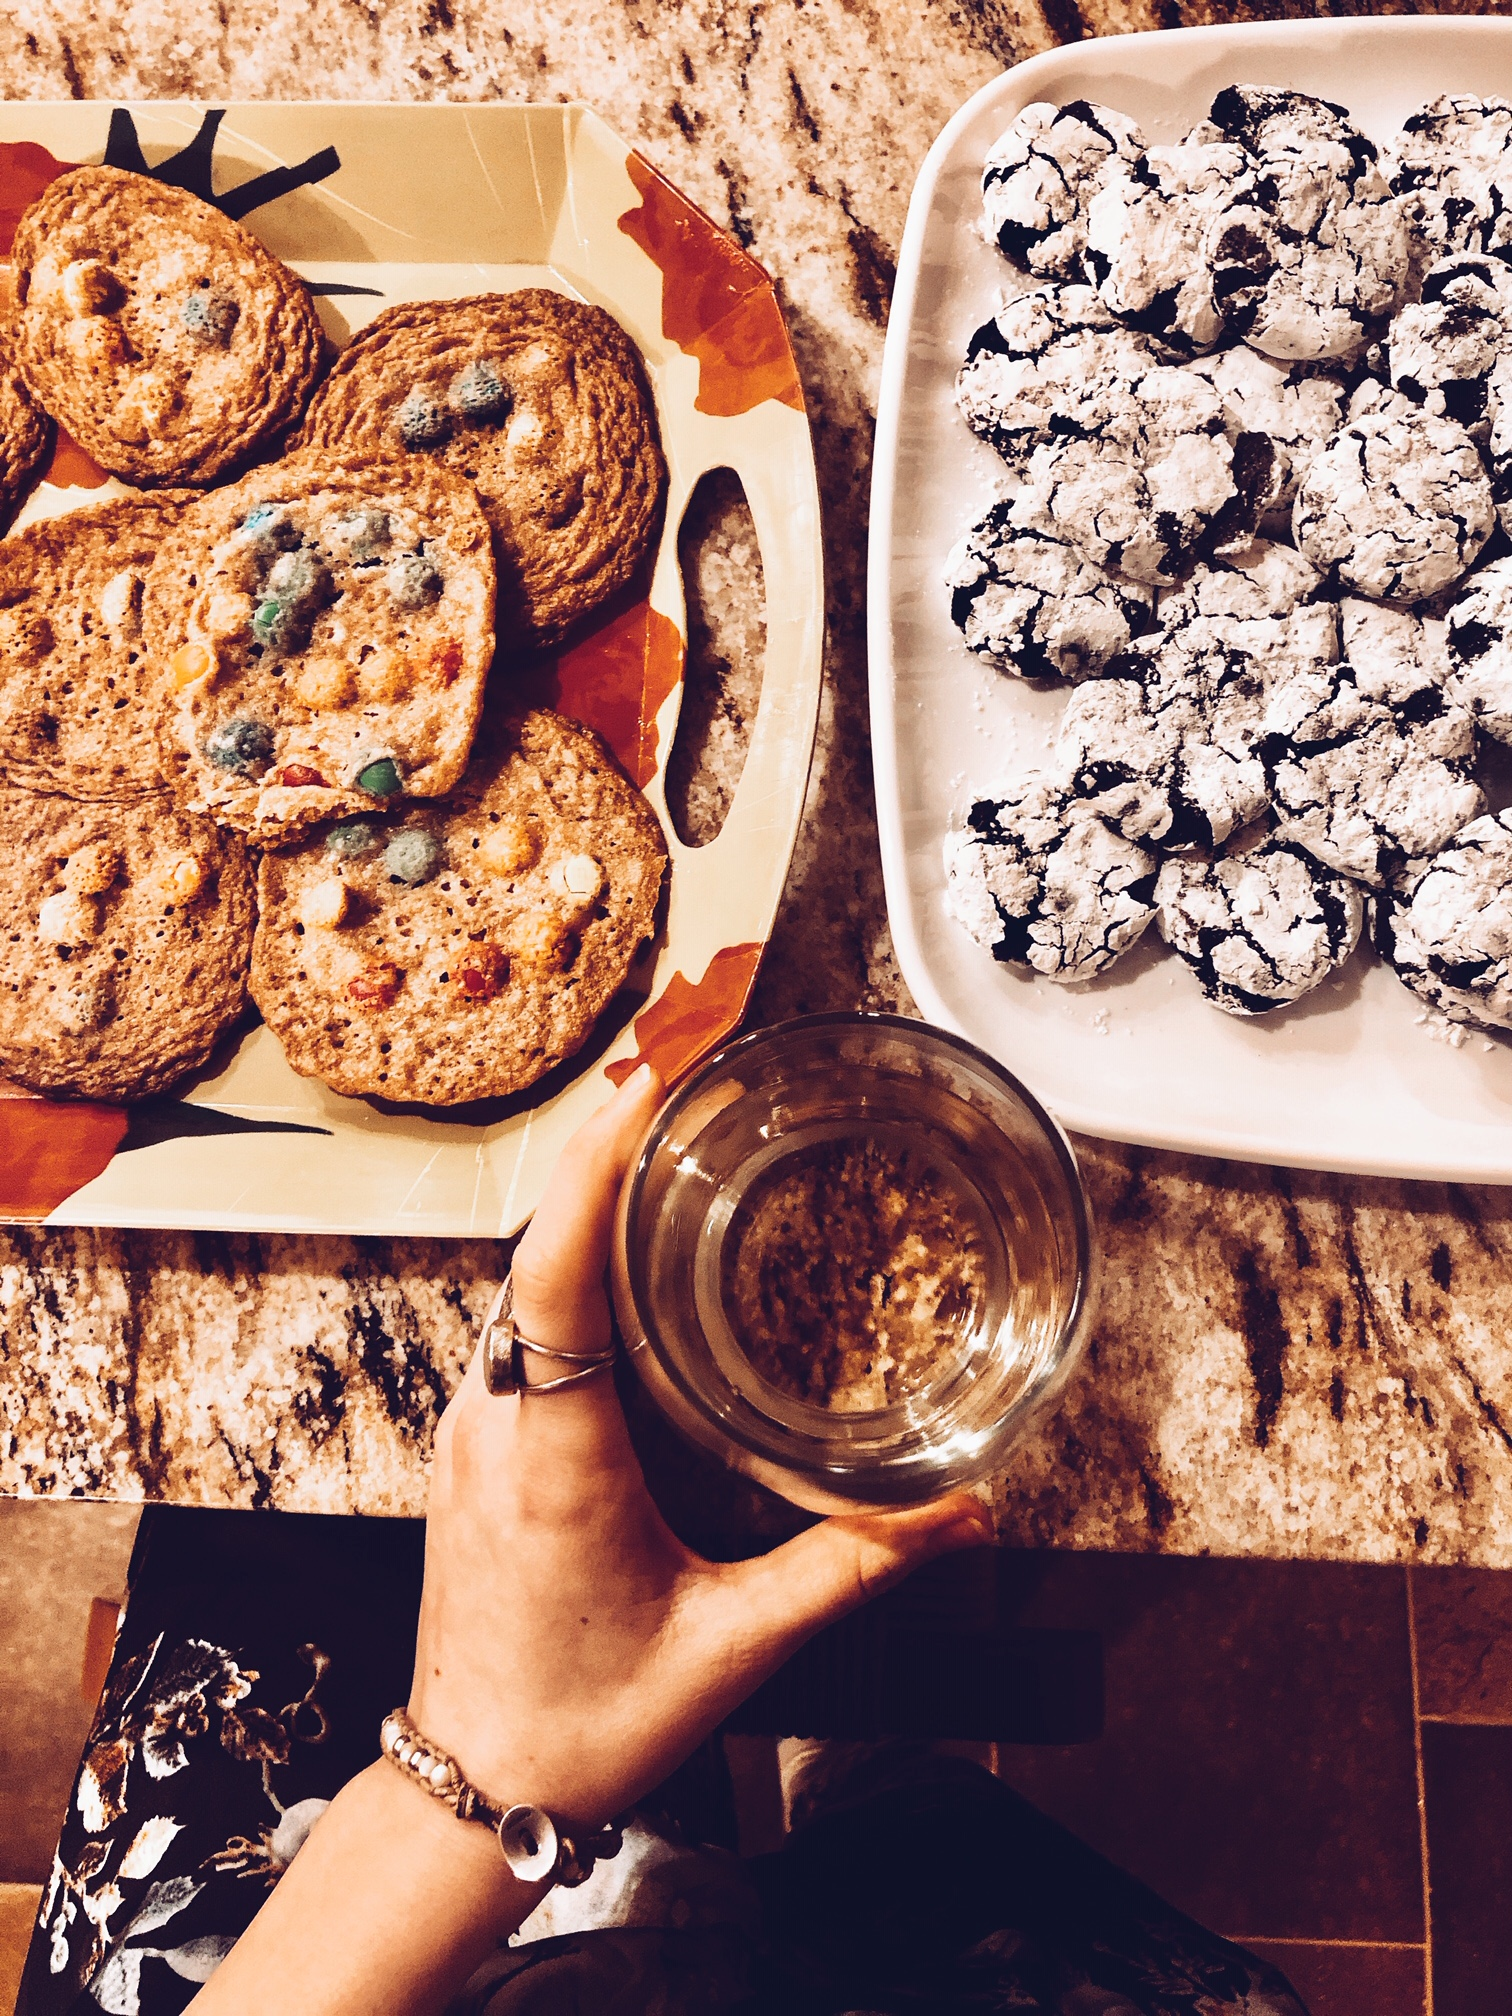 2   SOL   FUL GODDESS - Me just being my best self at the holidays - homemade cookies and chilled wine.